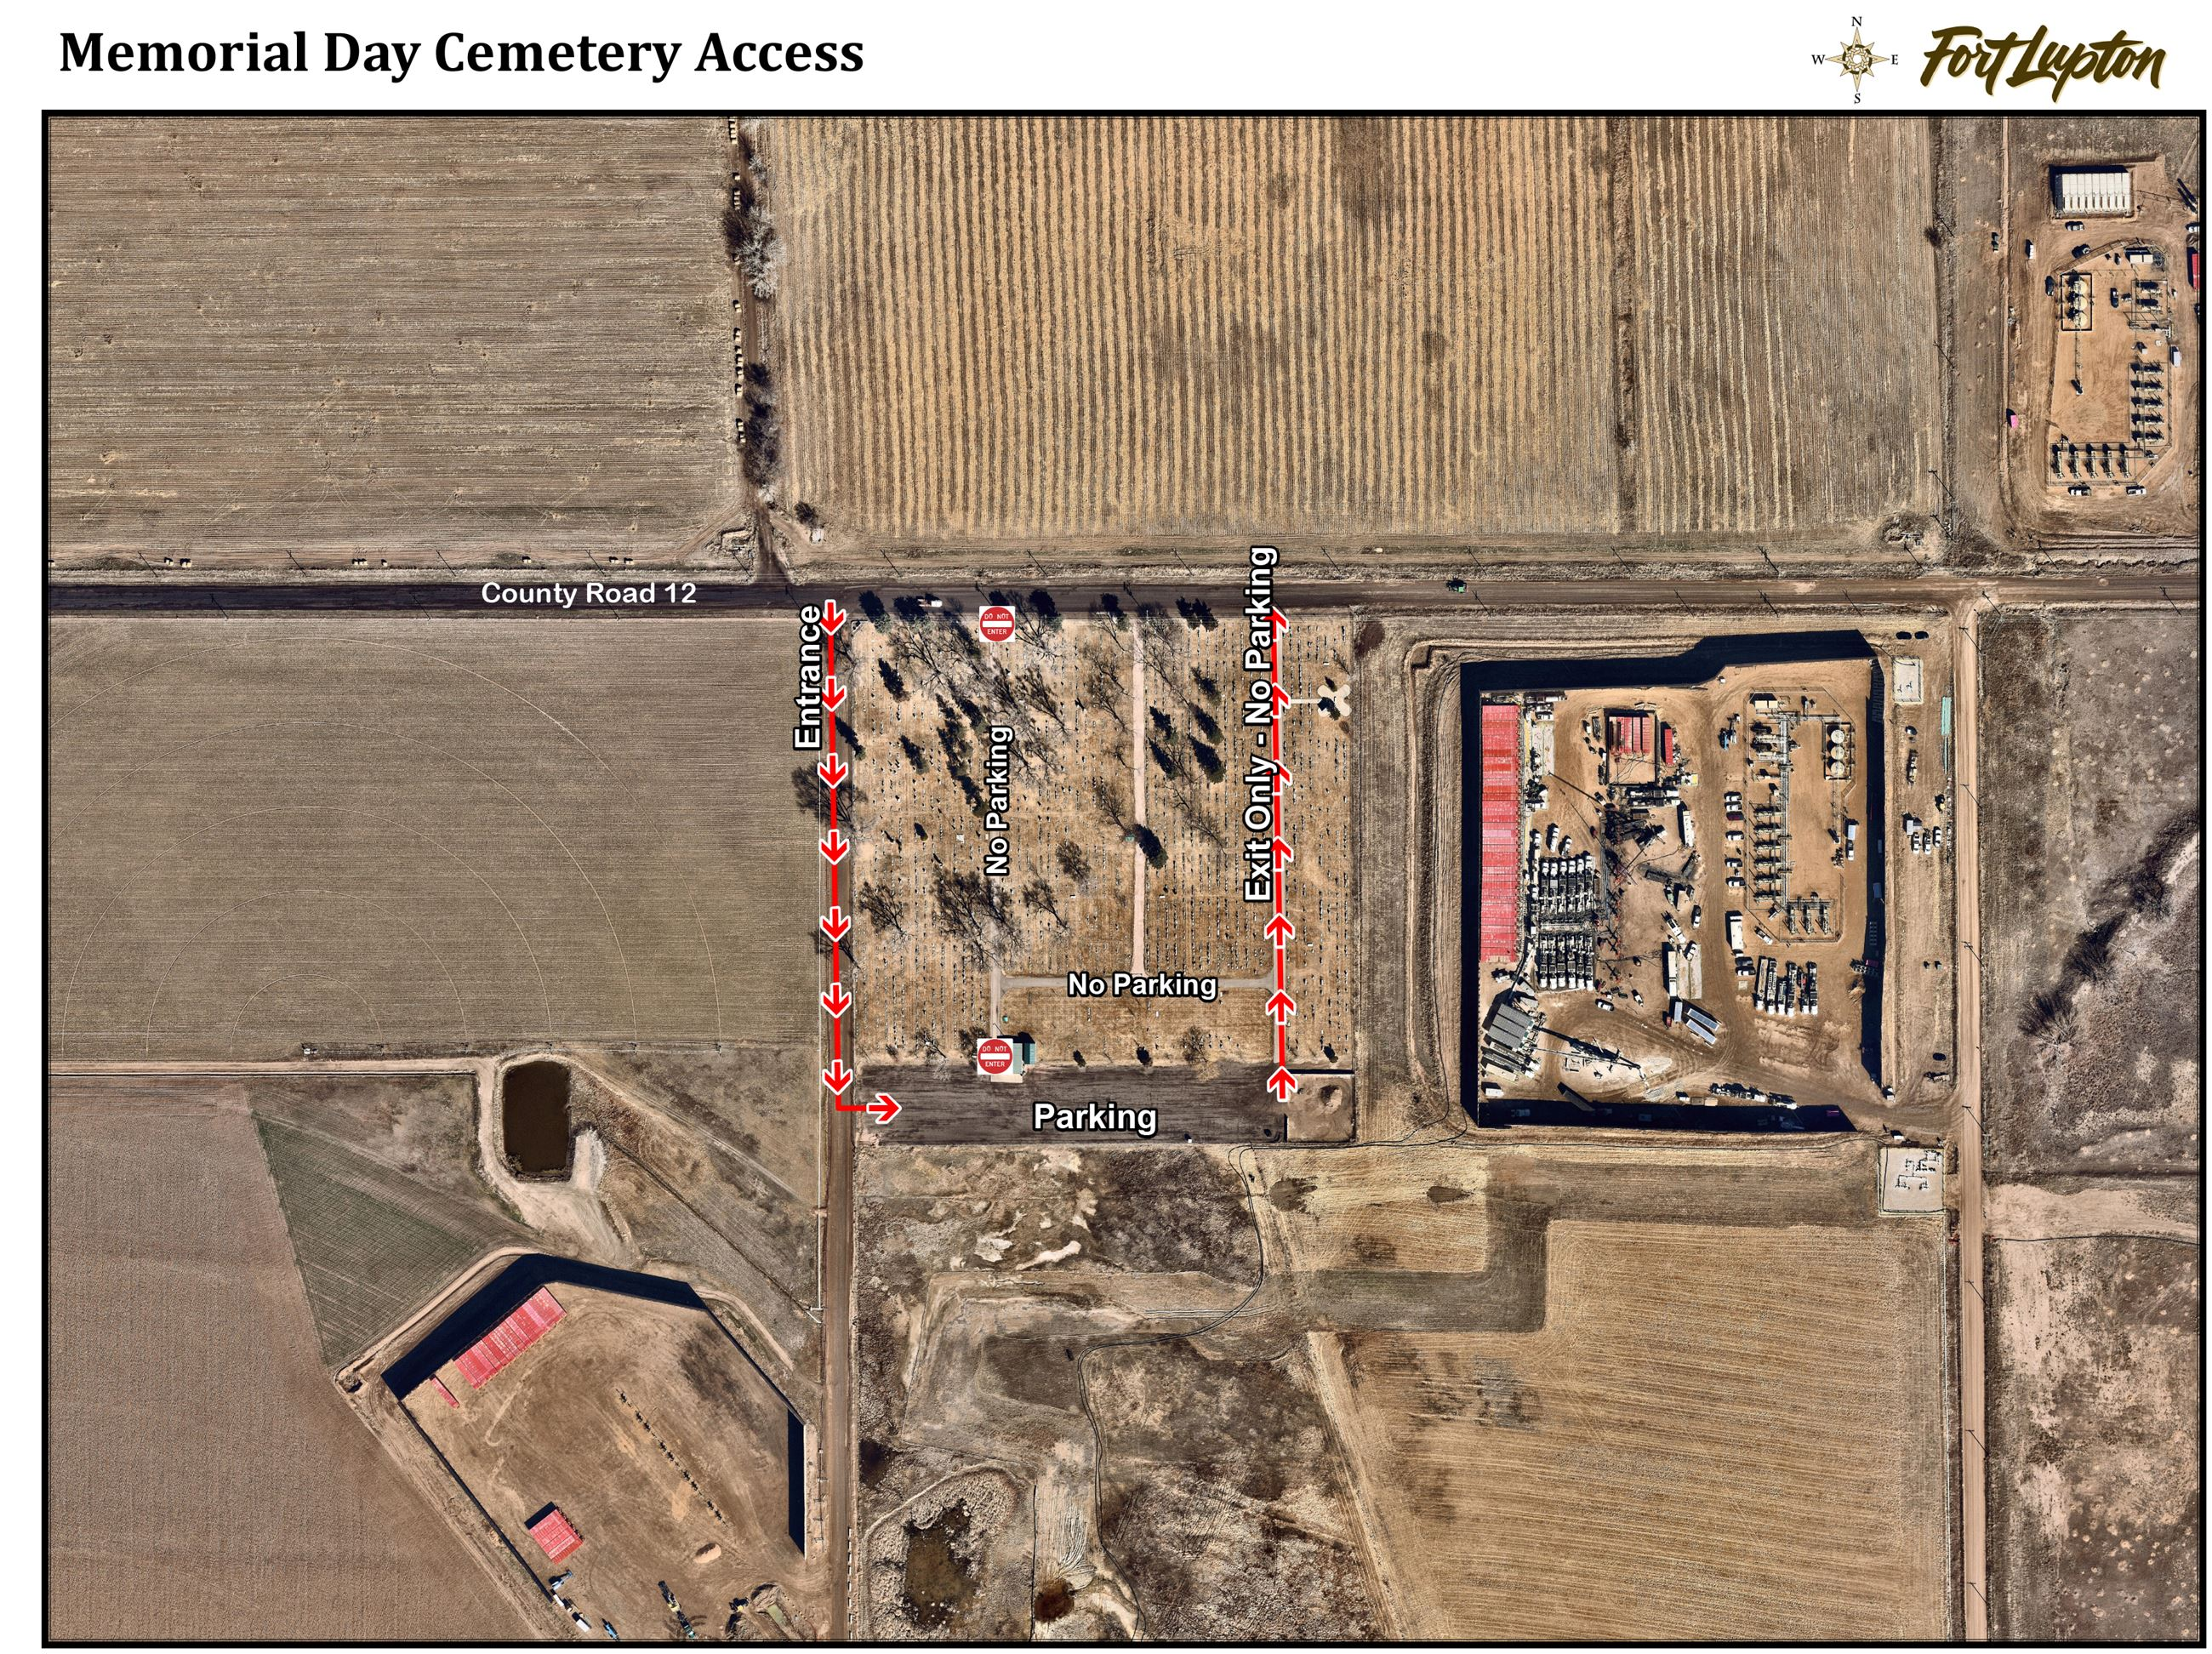 Memorial Day Cemetery Access 2020